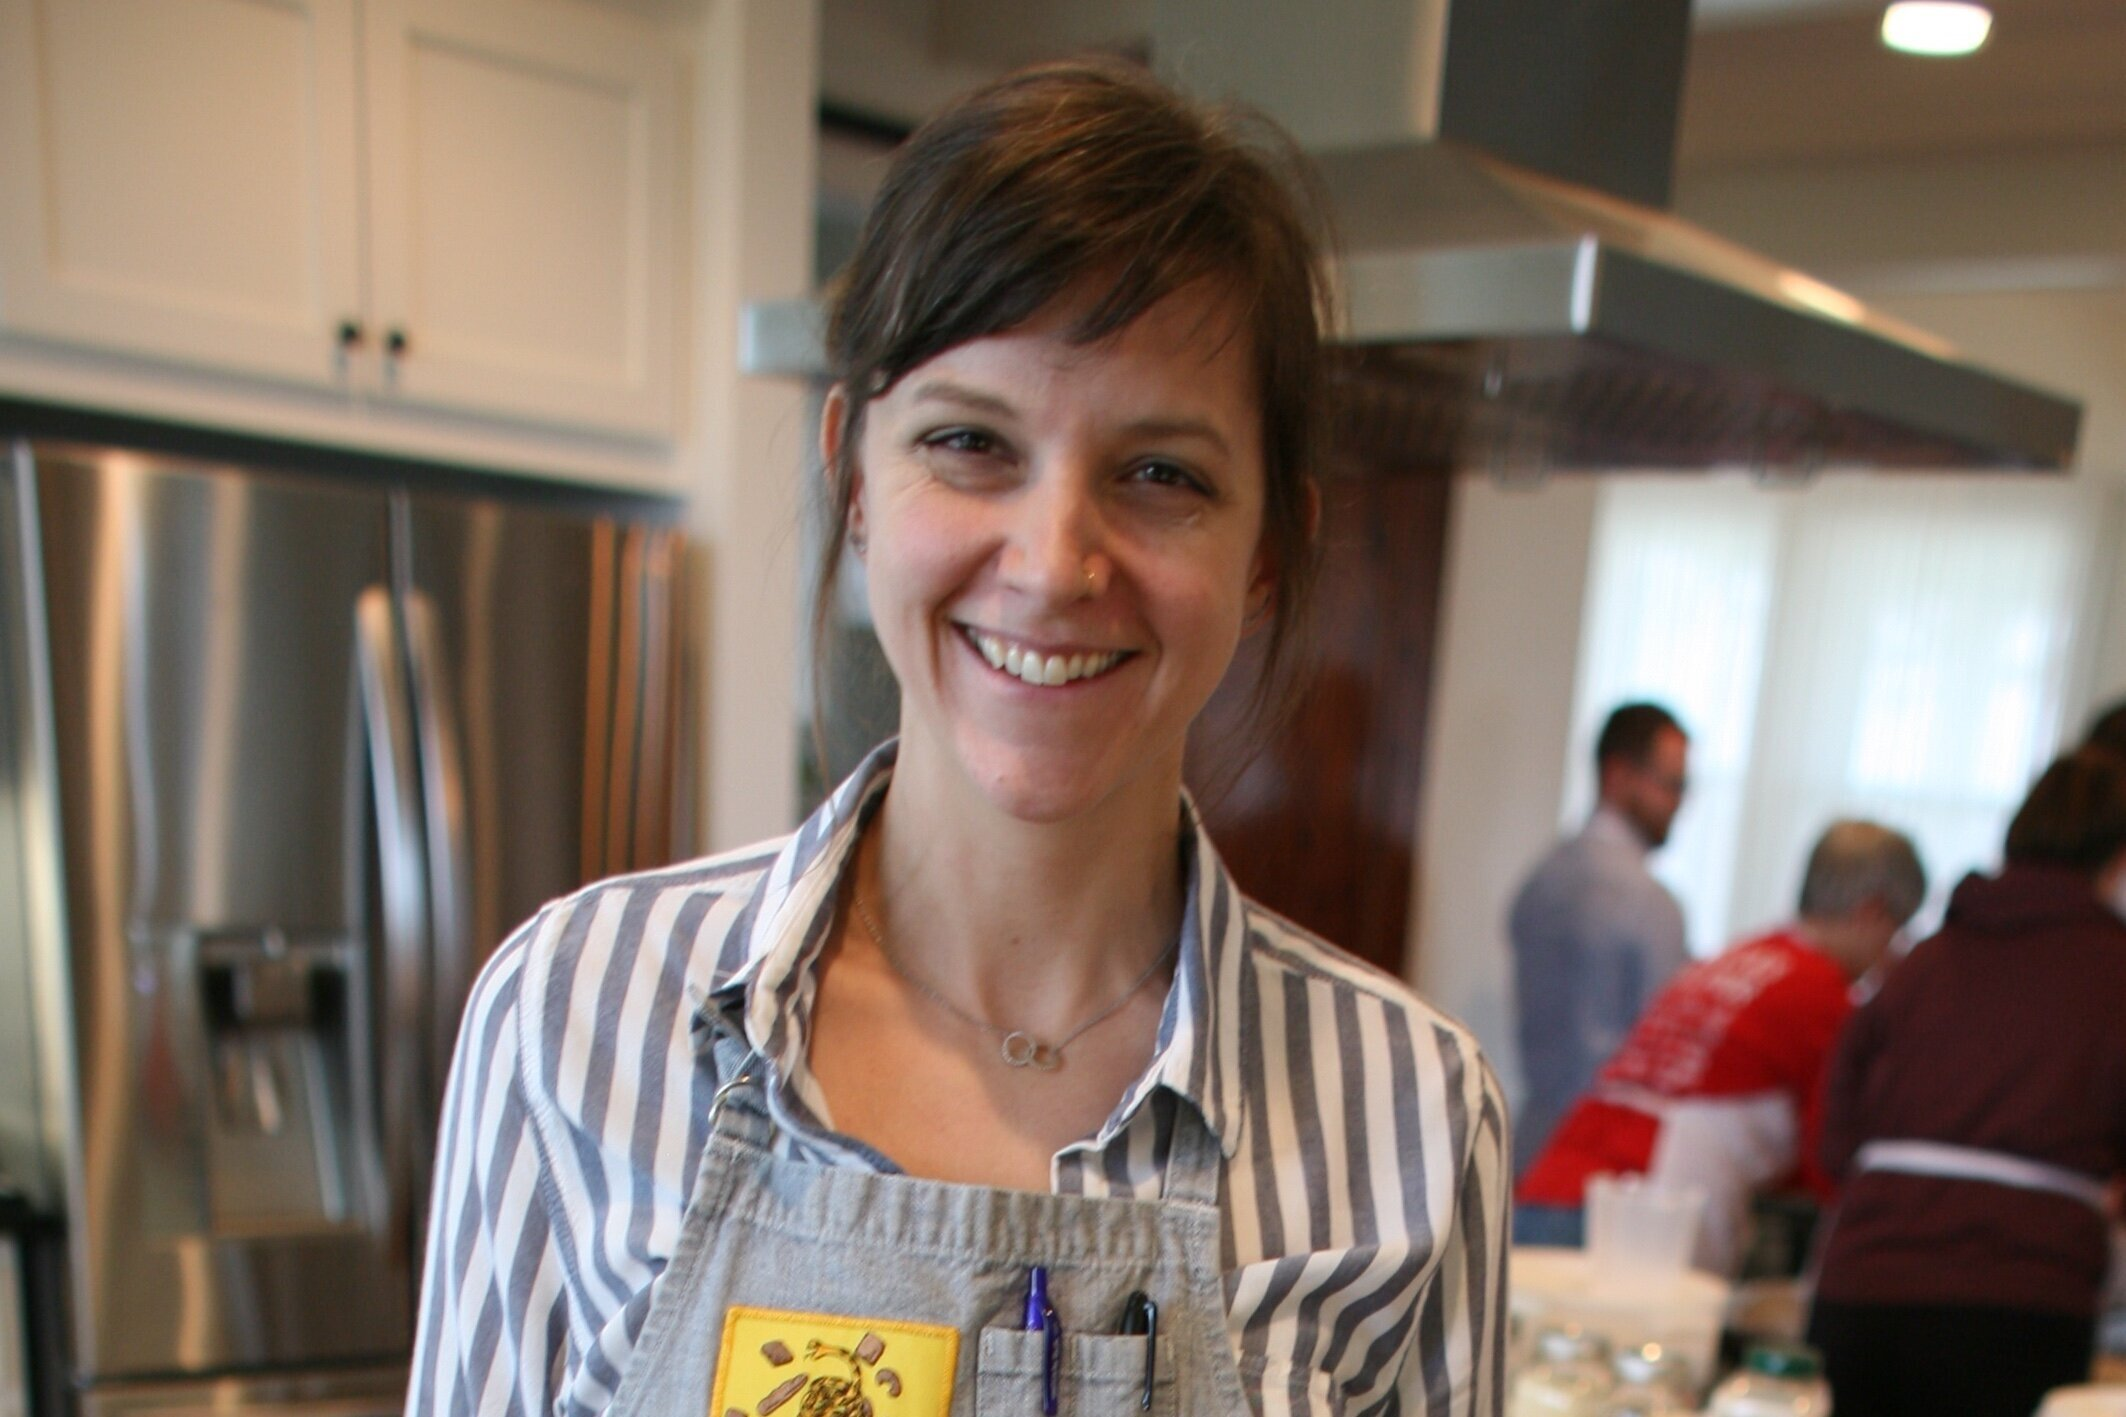 Abby Jane Love    Through her company L'Oven, Abby Love bakes whole grain breads and pastries from fresh milled flours, teaches baking classes, and is planning the opening of her Dripping Springs bakery in late 2019. Abby started her career in bakeries but quickly shifted to restaurant work. After a decade of moving around the country, she settled in Austin to become the pastry chef at Dai Due Butcher Shop and Supper Club from 2014-2017. At that time she shifted her focus back to her roots in artisan bread and L'Oven was born.